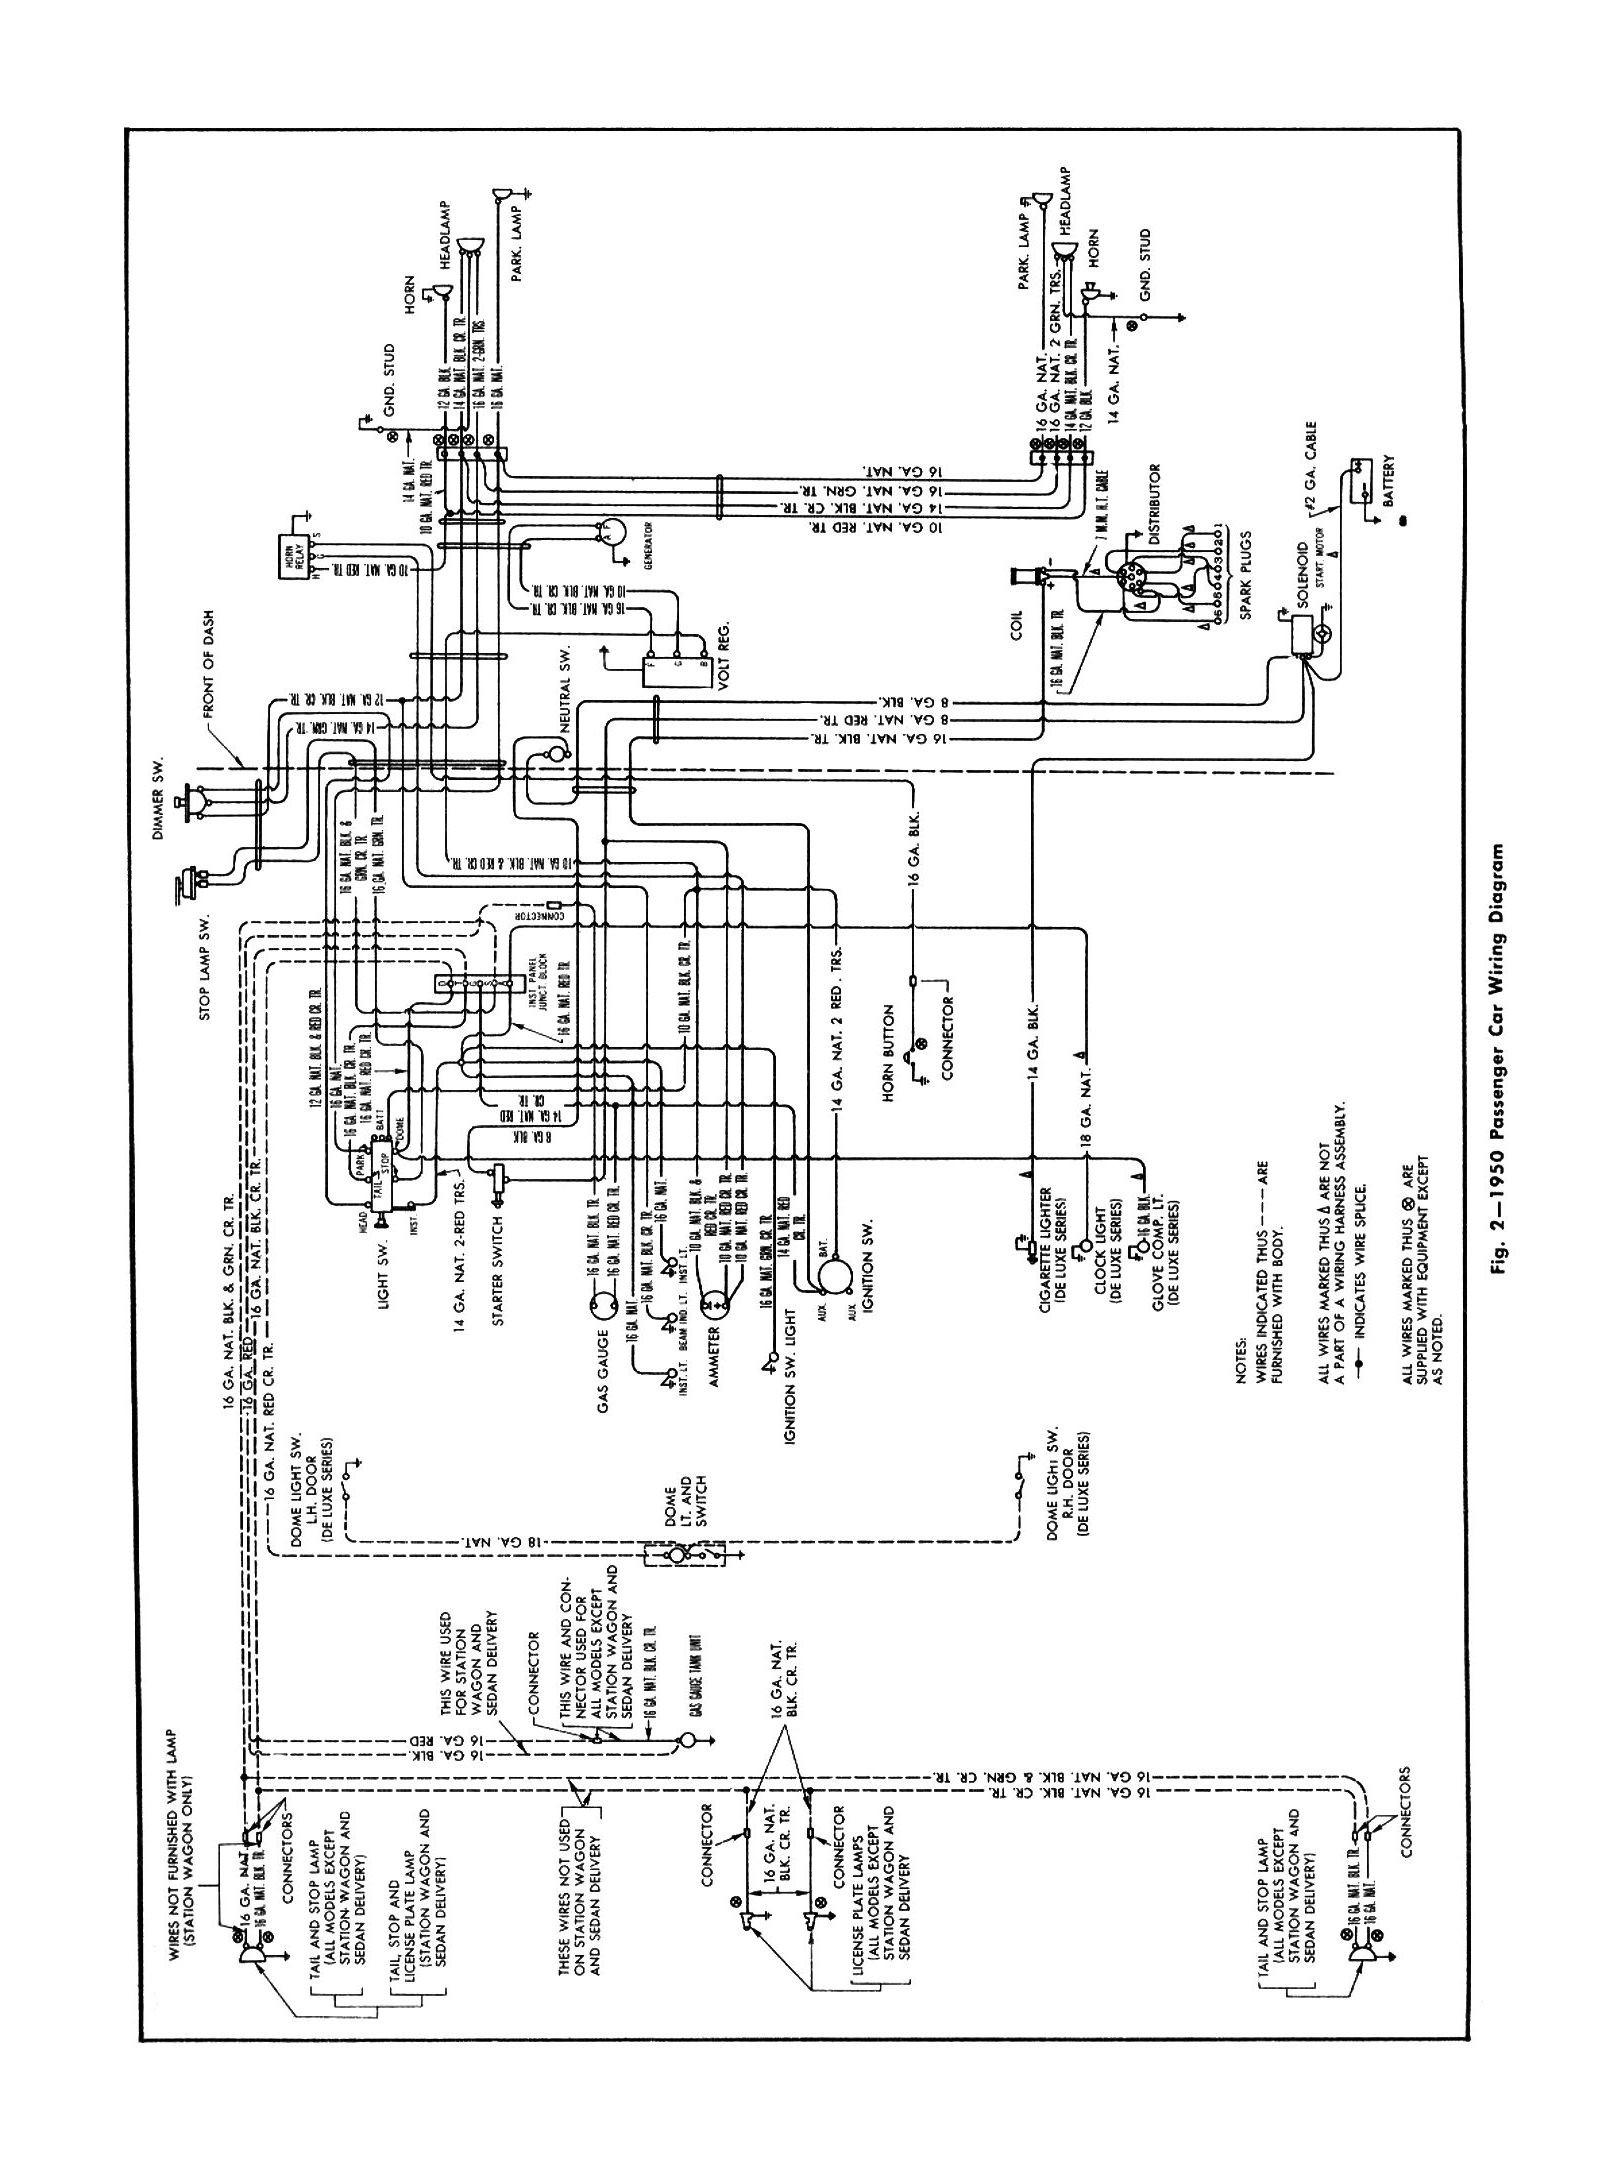 49 Mercury Auto Mobile Wiring Diagrams - Wiring Diagram on 7 pin cable, 7 pin connector diagram, 7 pin power supply, 7 pin relay diagram, 7 pin trailer diagram, 7 pin electrical, 7 pronge trailer connector diagram, 7 pin battery, sae j1850 pin diagram, 7 pin plug diagram, 7 pin coil, 7 pin controller diagram, 7 pin regulator, 7 pin cover, 7 prong trailer plug diagram, 7 pin ford,